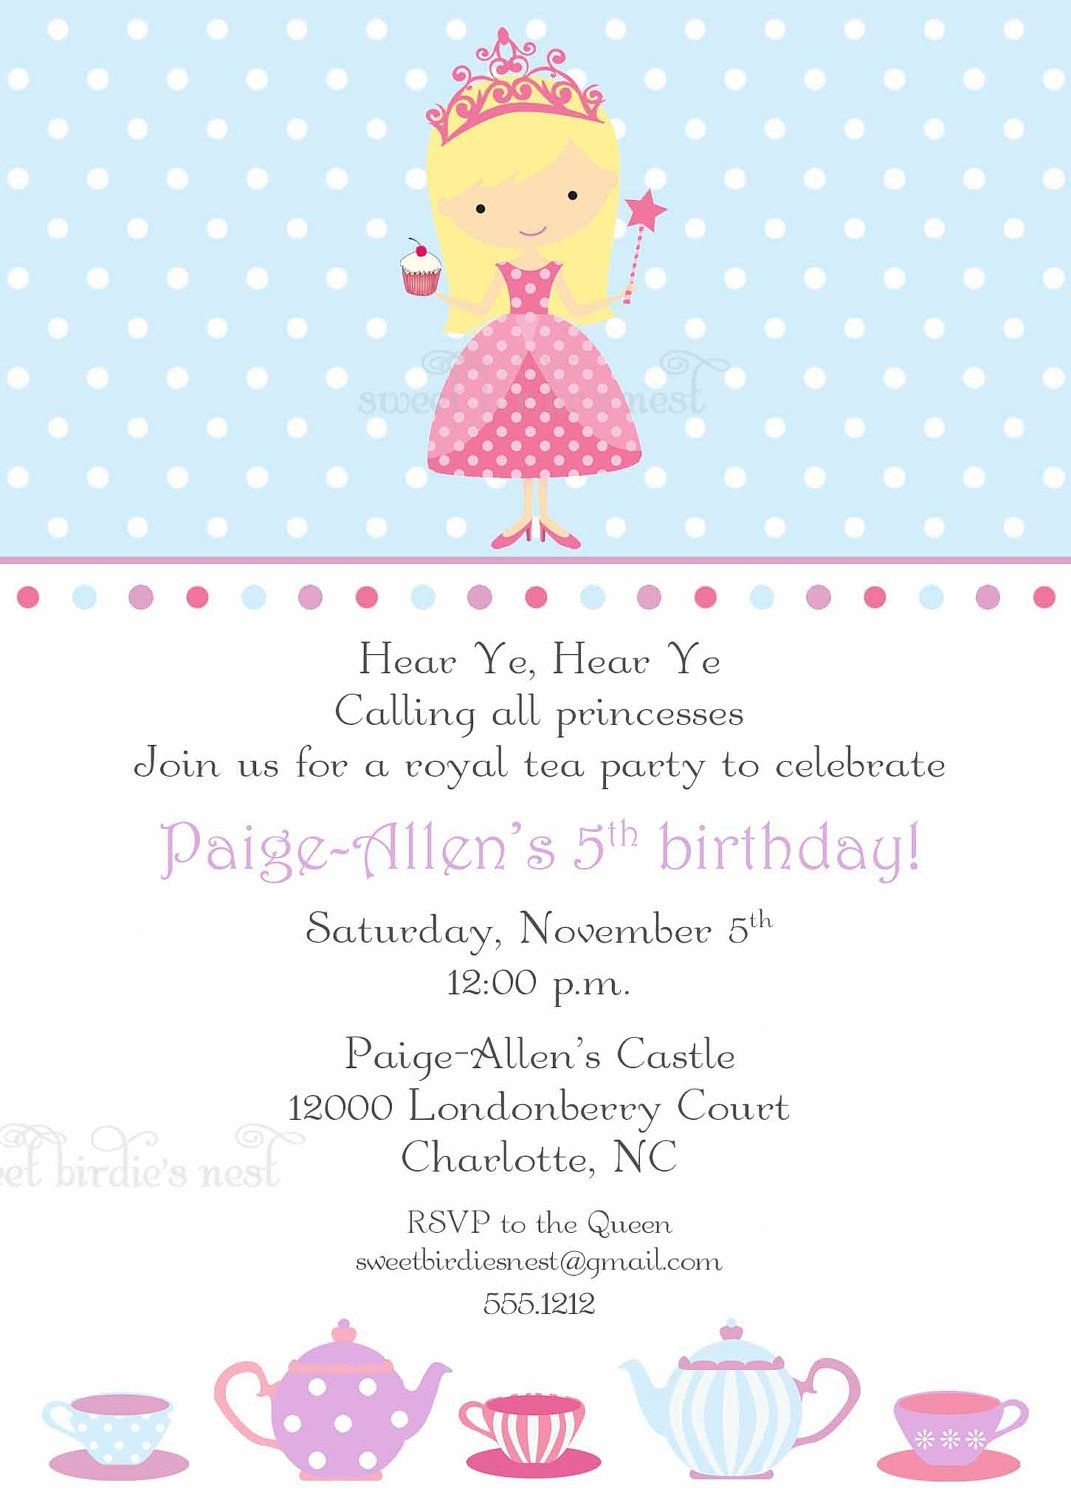 Princess Tea Party Invitation By Sweetbirsnest On Etsy 28 00